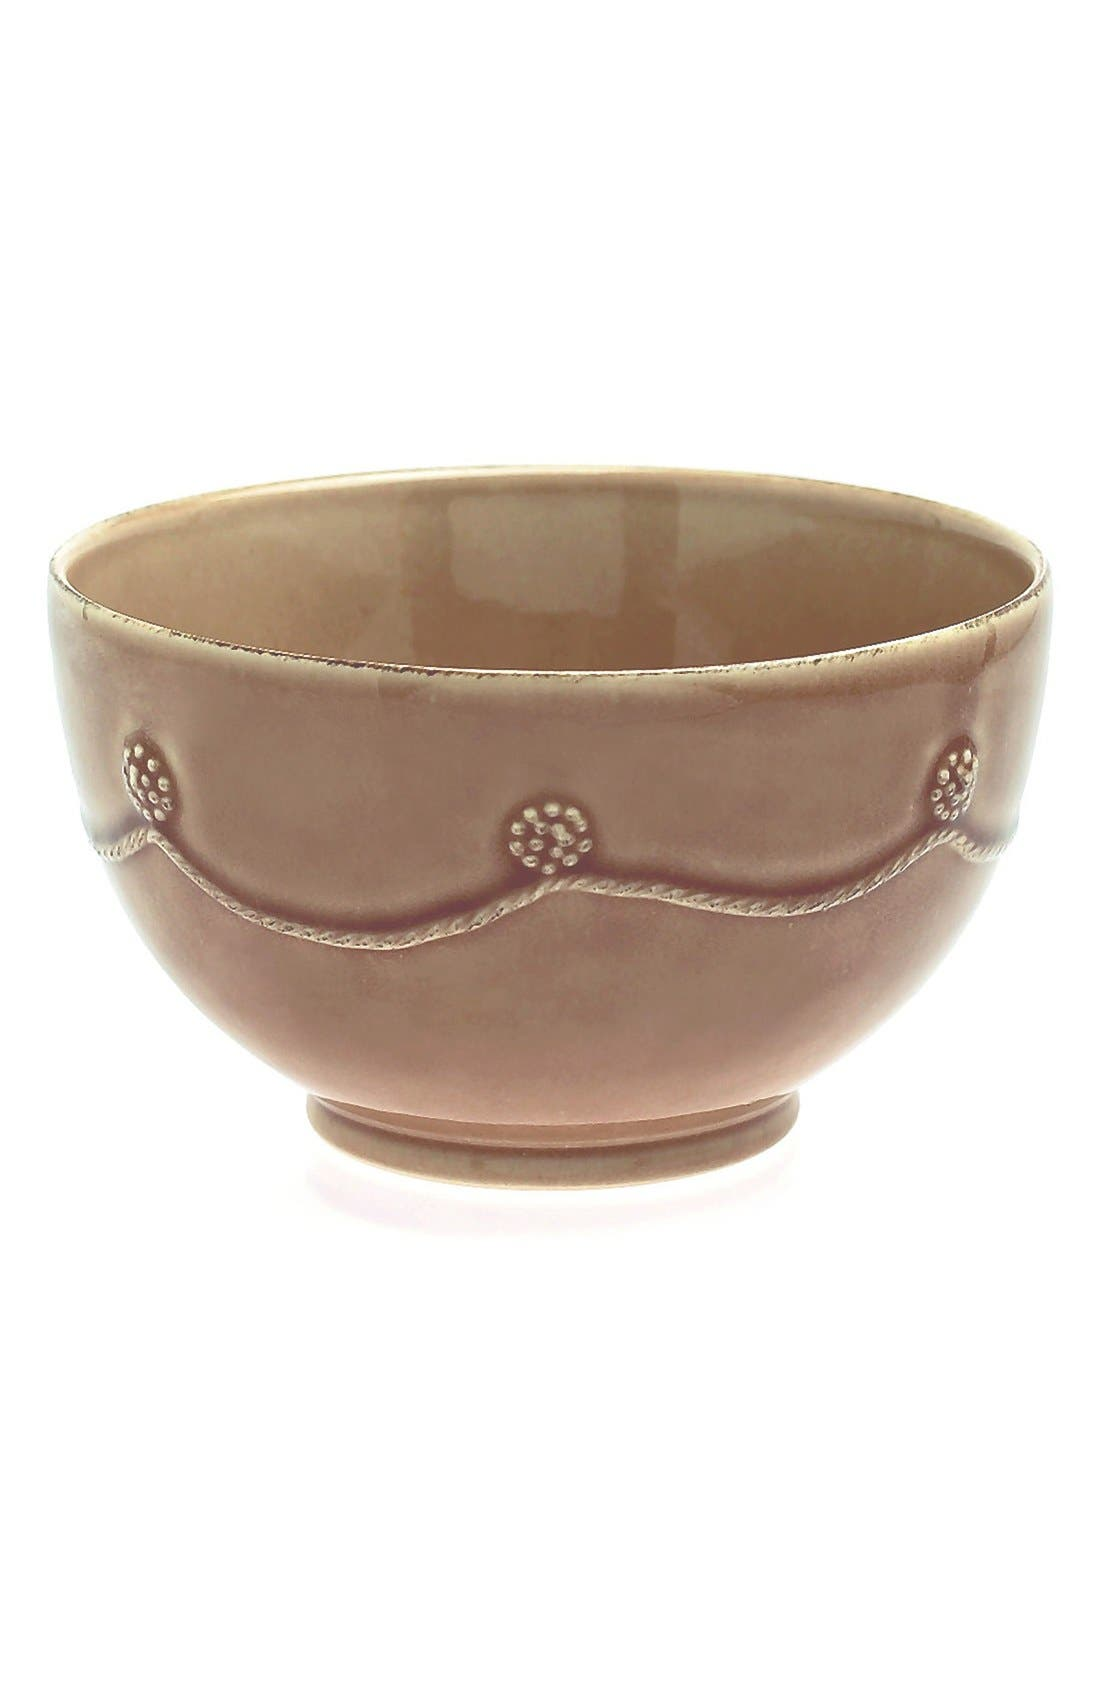 Juliska 'Berry and Thread' Soup Bowl